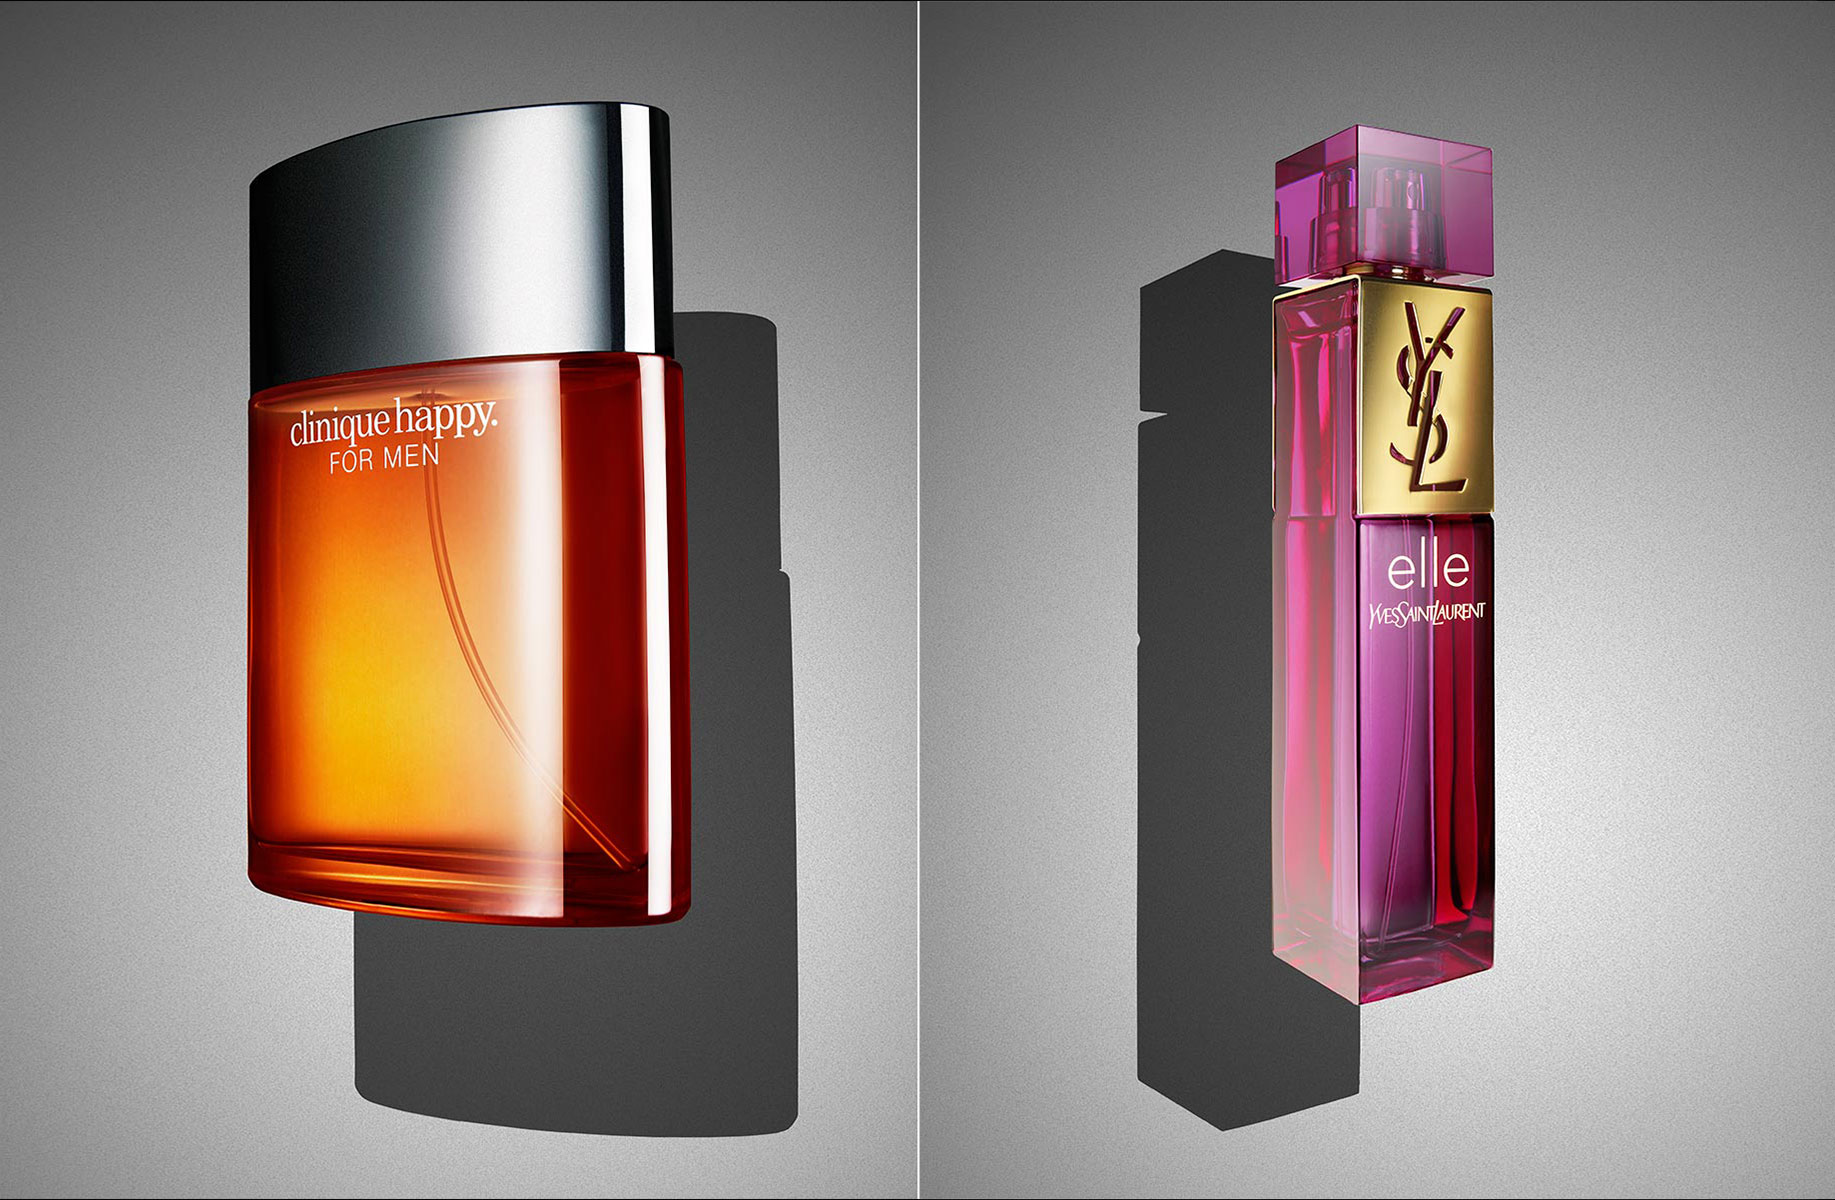 Clinique Happy / Yves Saint Laurent Elle